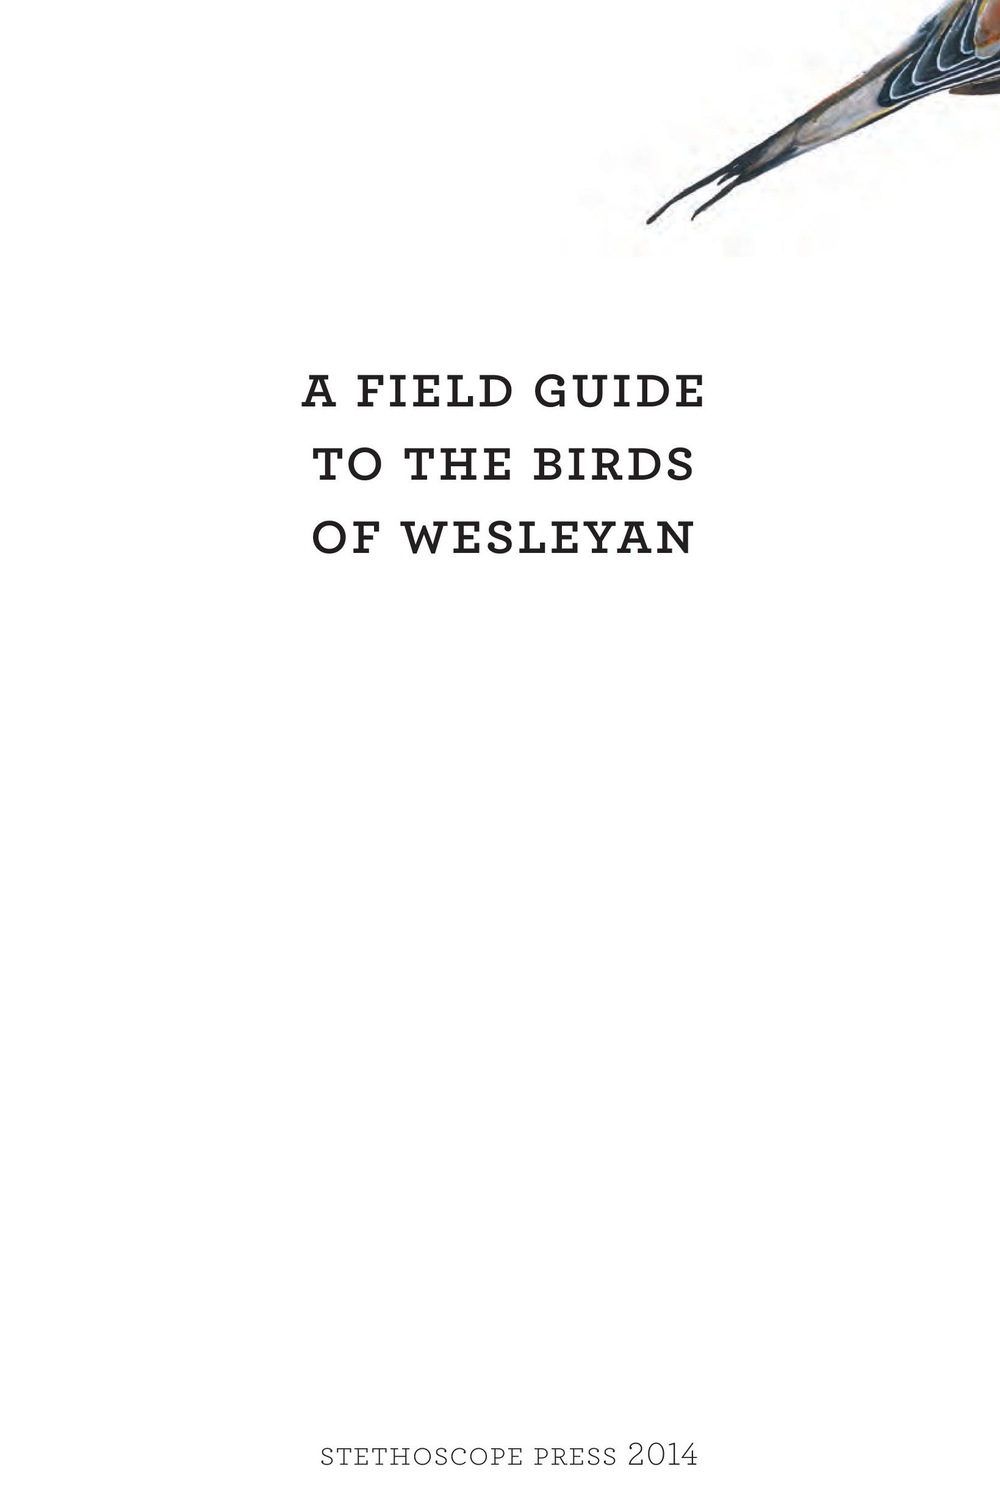 James_FieldGuide_Text screen lores (3)-page-001.jpg